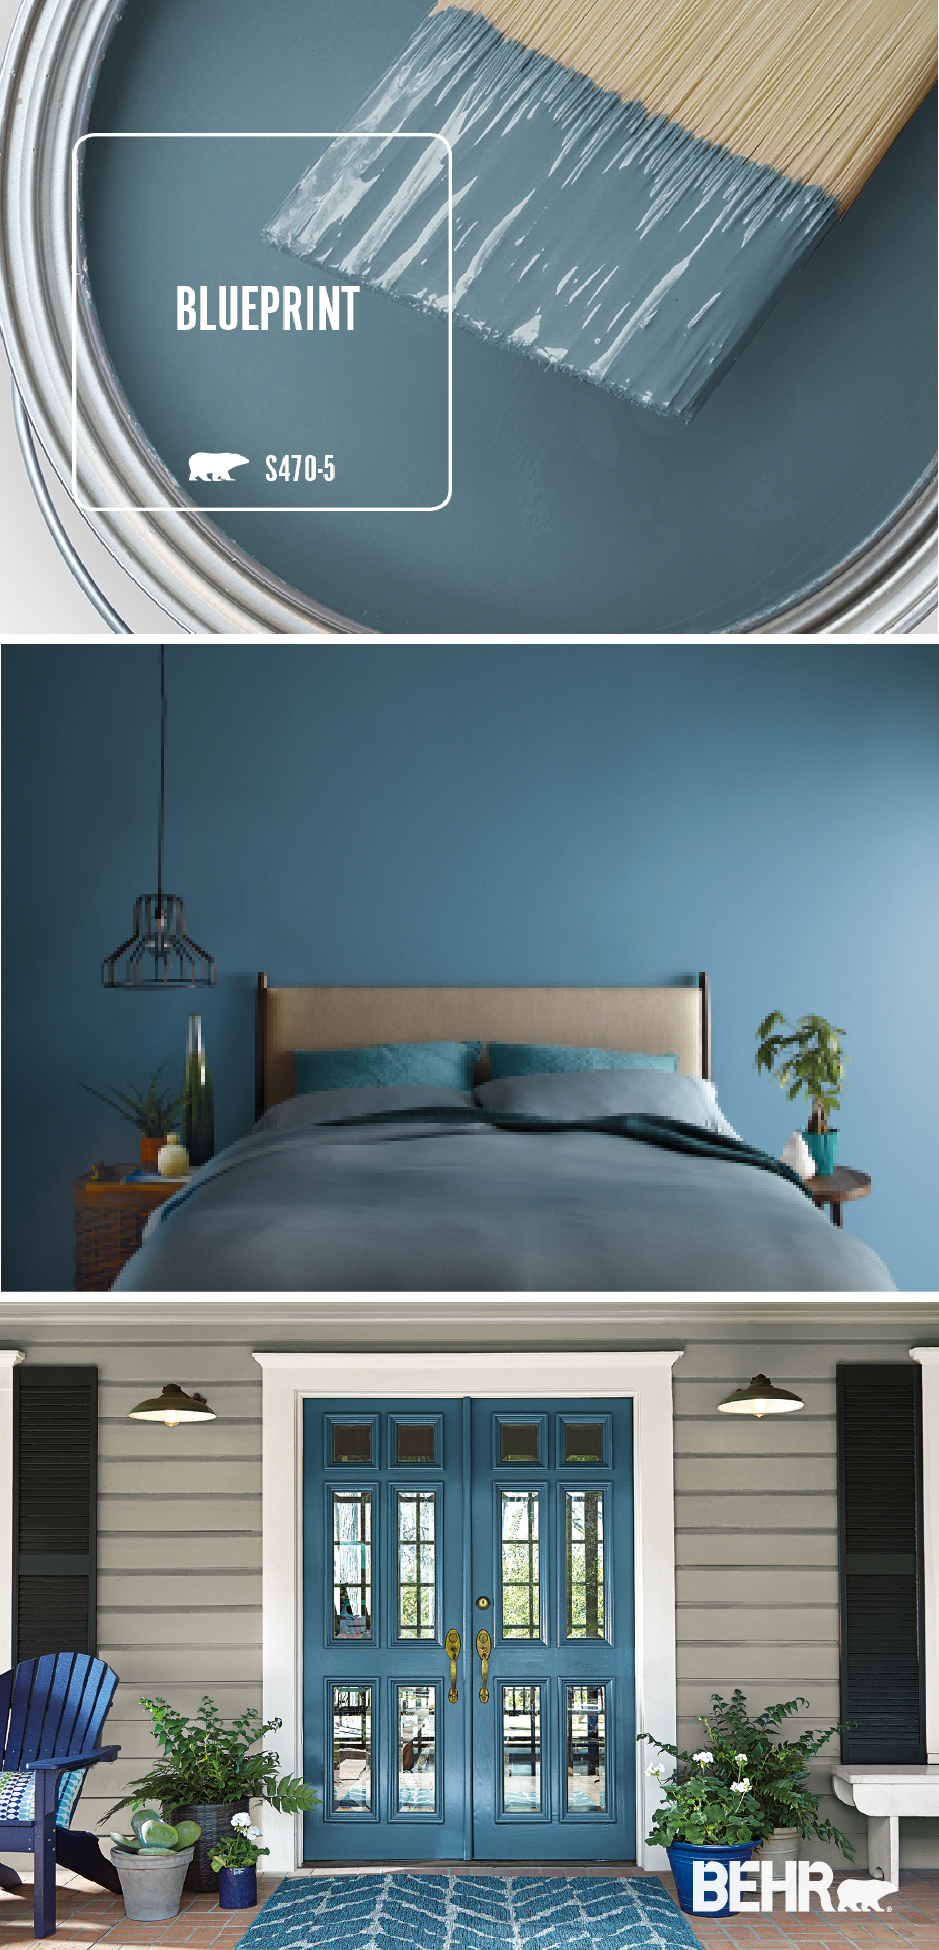 See What The Behr 2019 Color Of The Year Blueprint Can Do For Your Home These Creative Interi Paint Colors For Home Blue Master Bedroom Bedroom Paint Colors